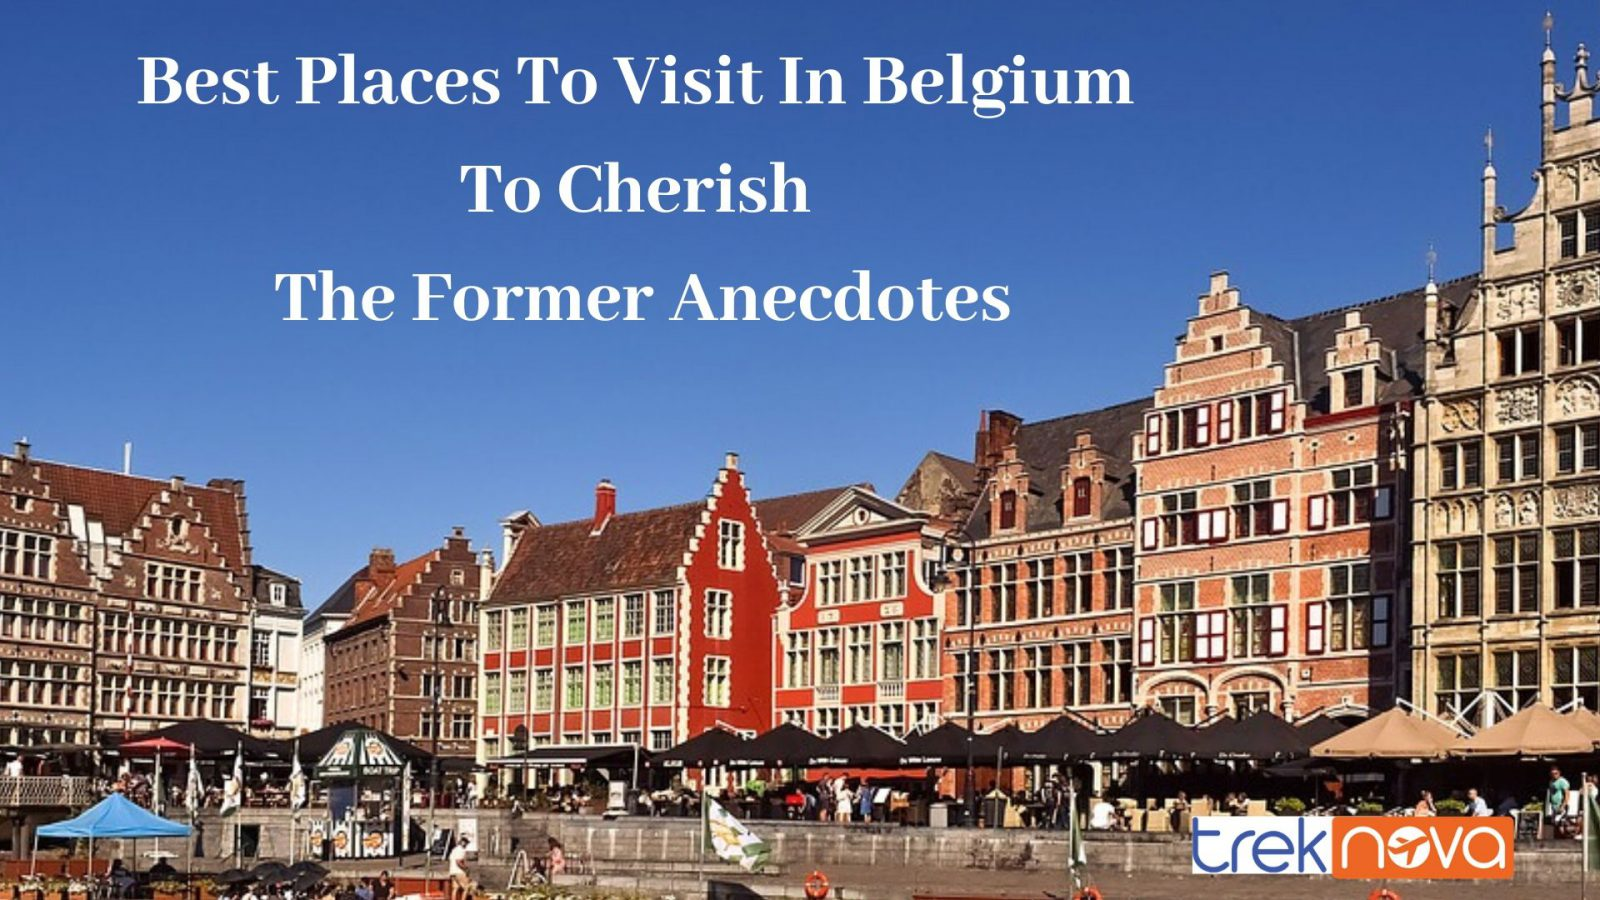 Best Places To Visit In Belgium To Cherish The Former Anecdotes